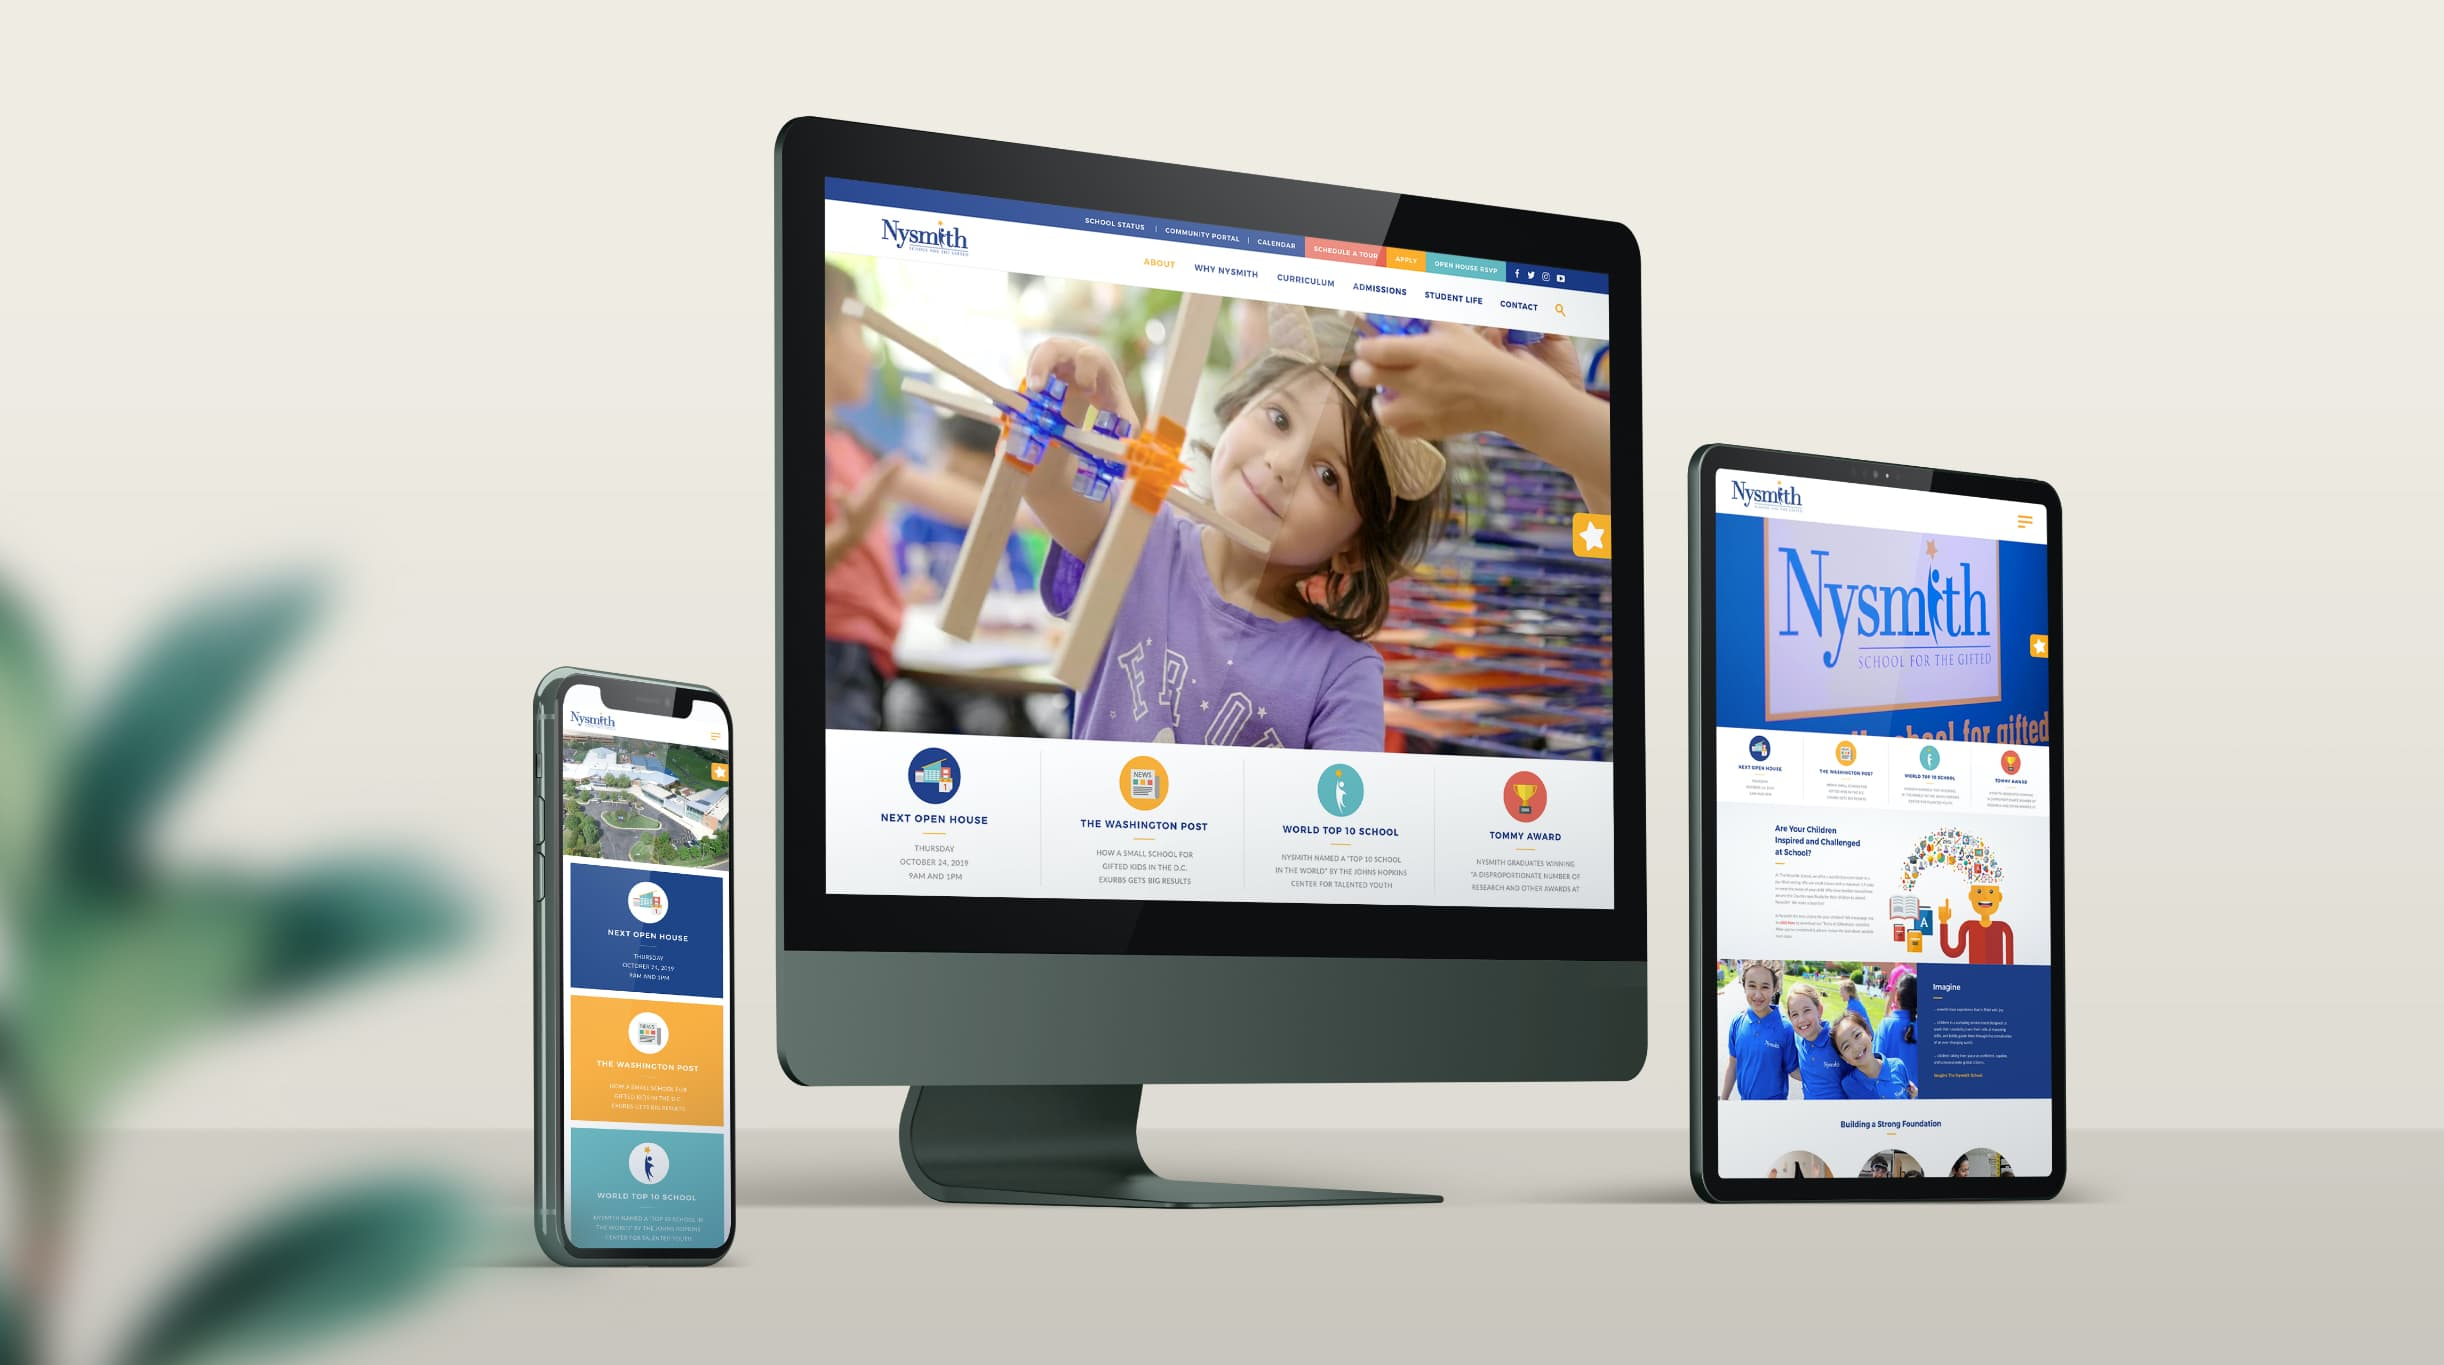 Nysmith School for the Gifted website redesign and development using WordPress